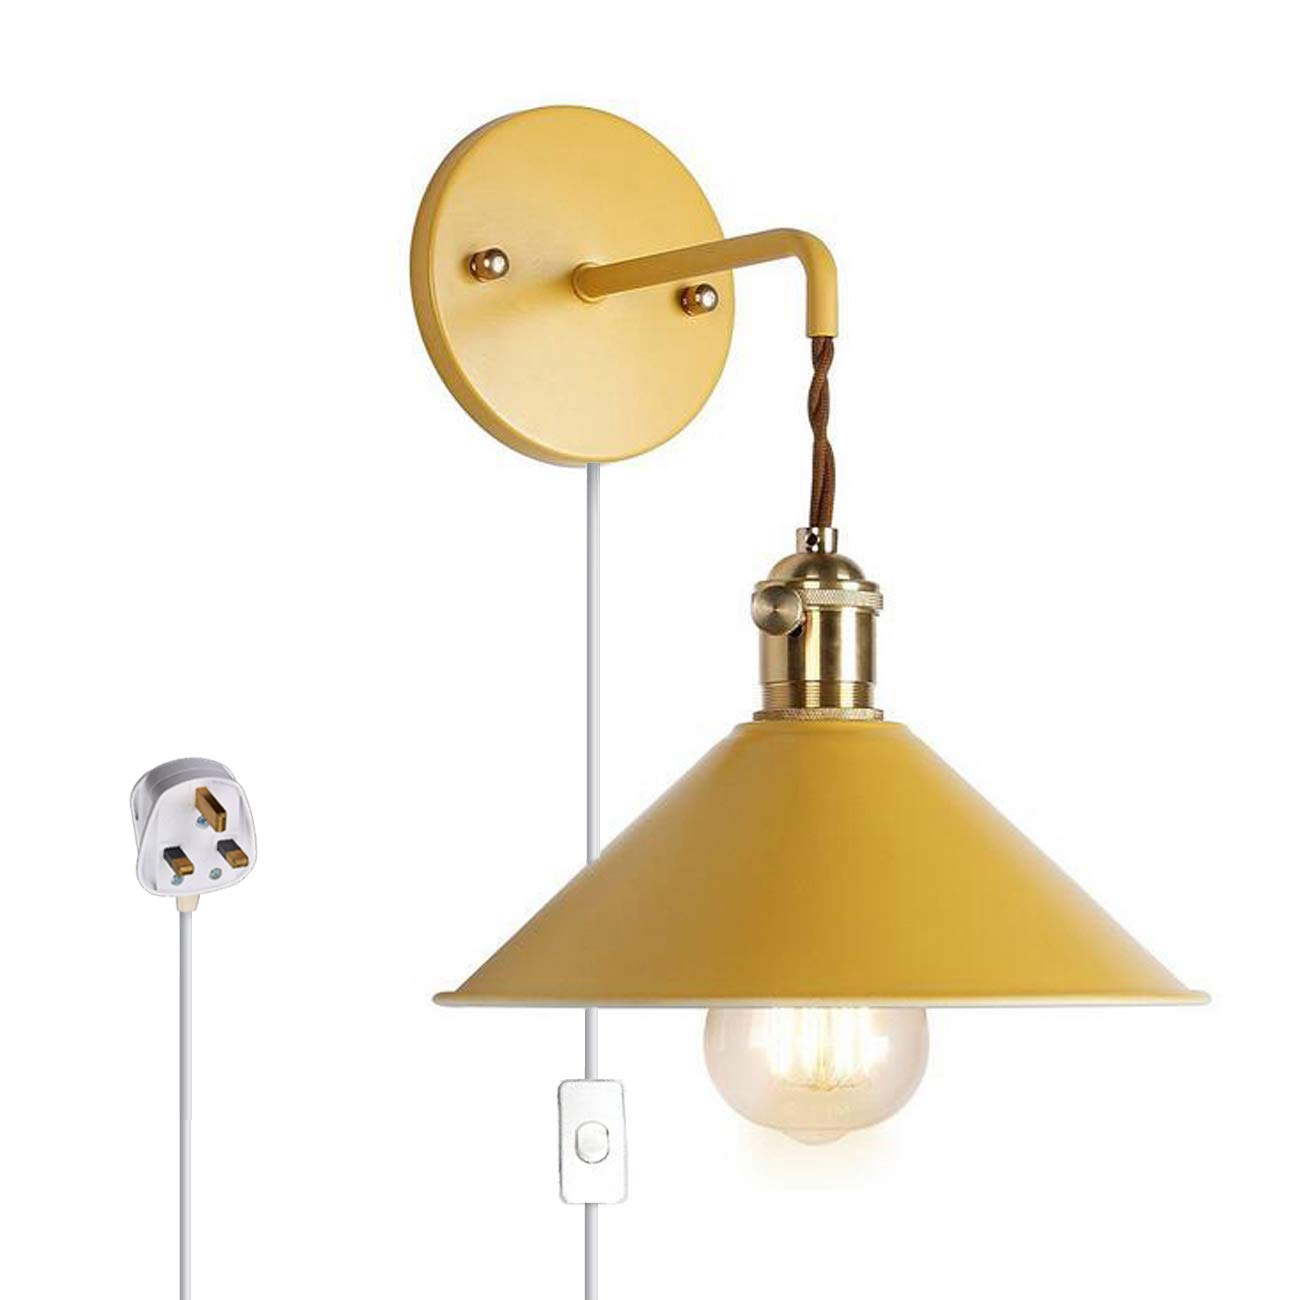 Wall Sconce Lamps Lighting Fixture With On Off Switch And Practical  Plug,Yellow Macaron Wall Lamp E26 Edison Copper Lamp Holder With Frosted  Paint Body ...